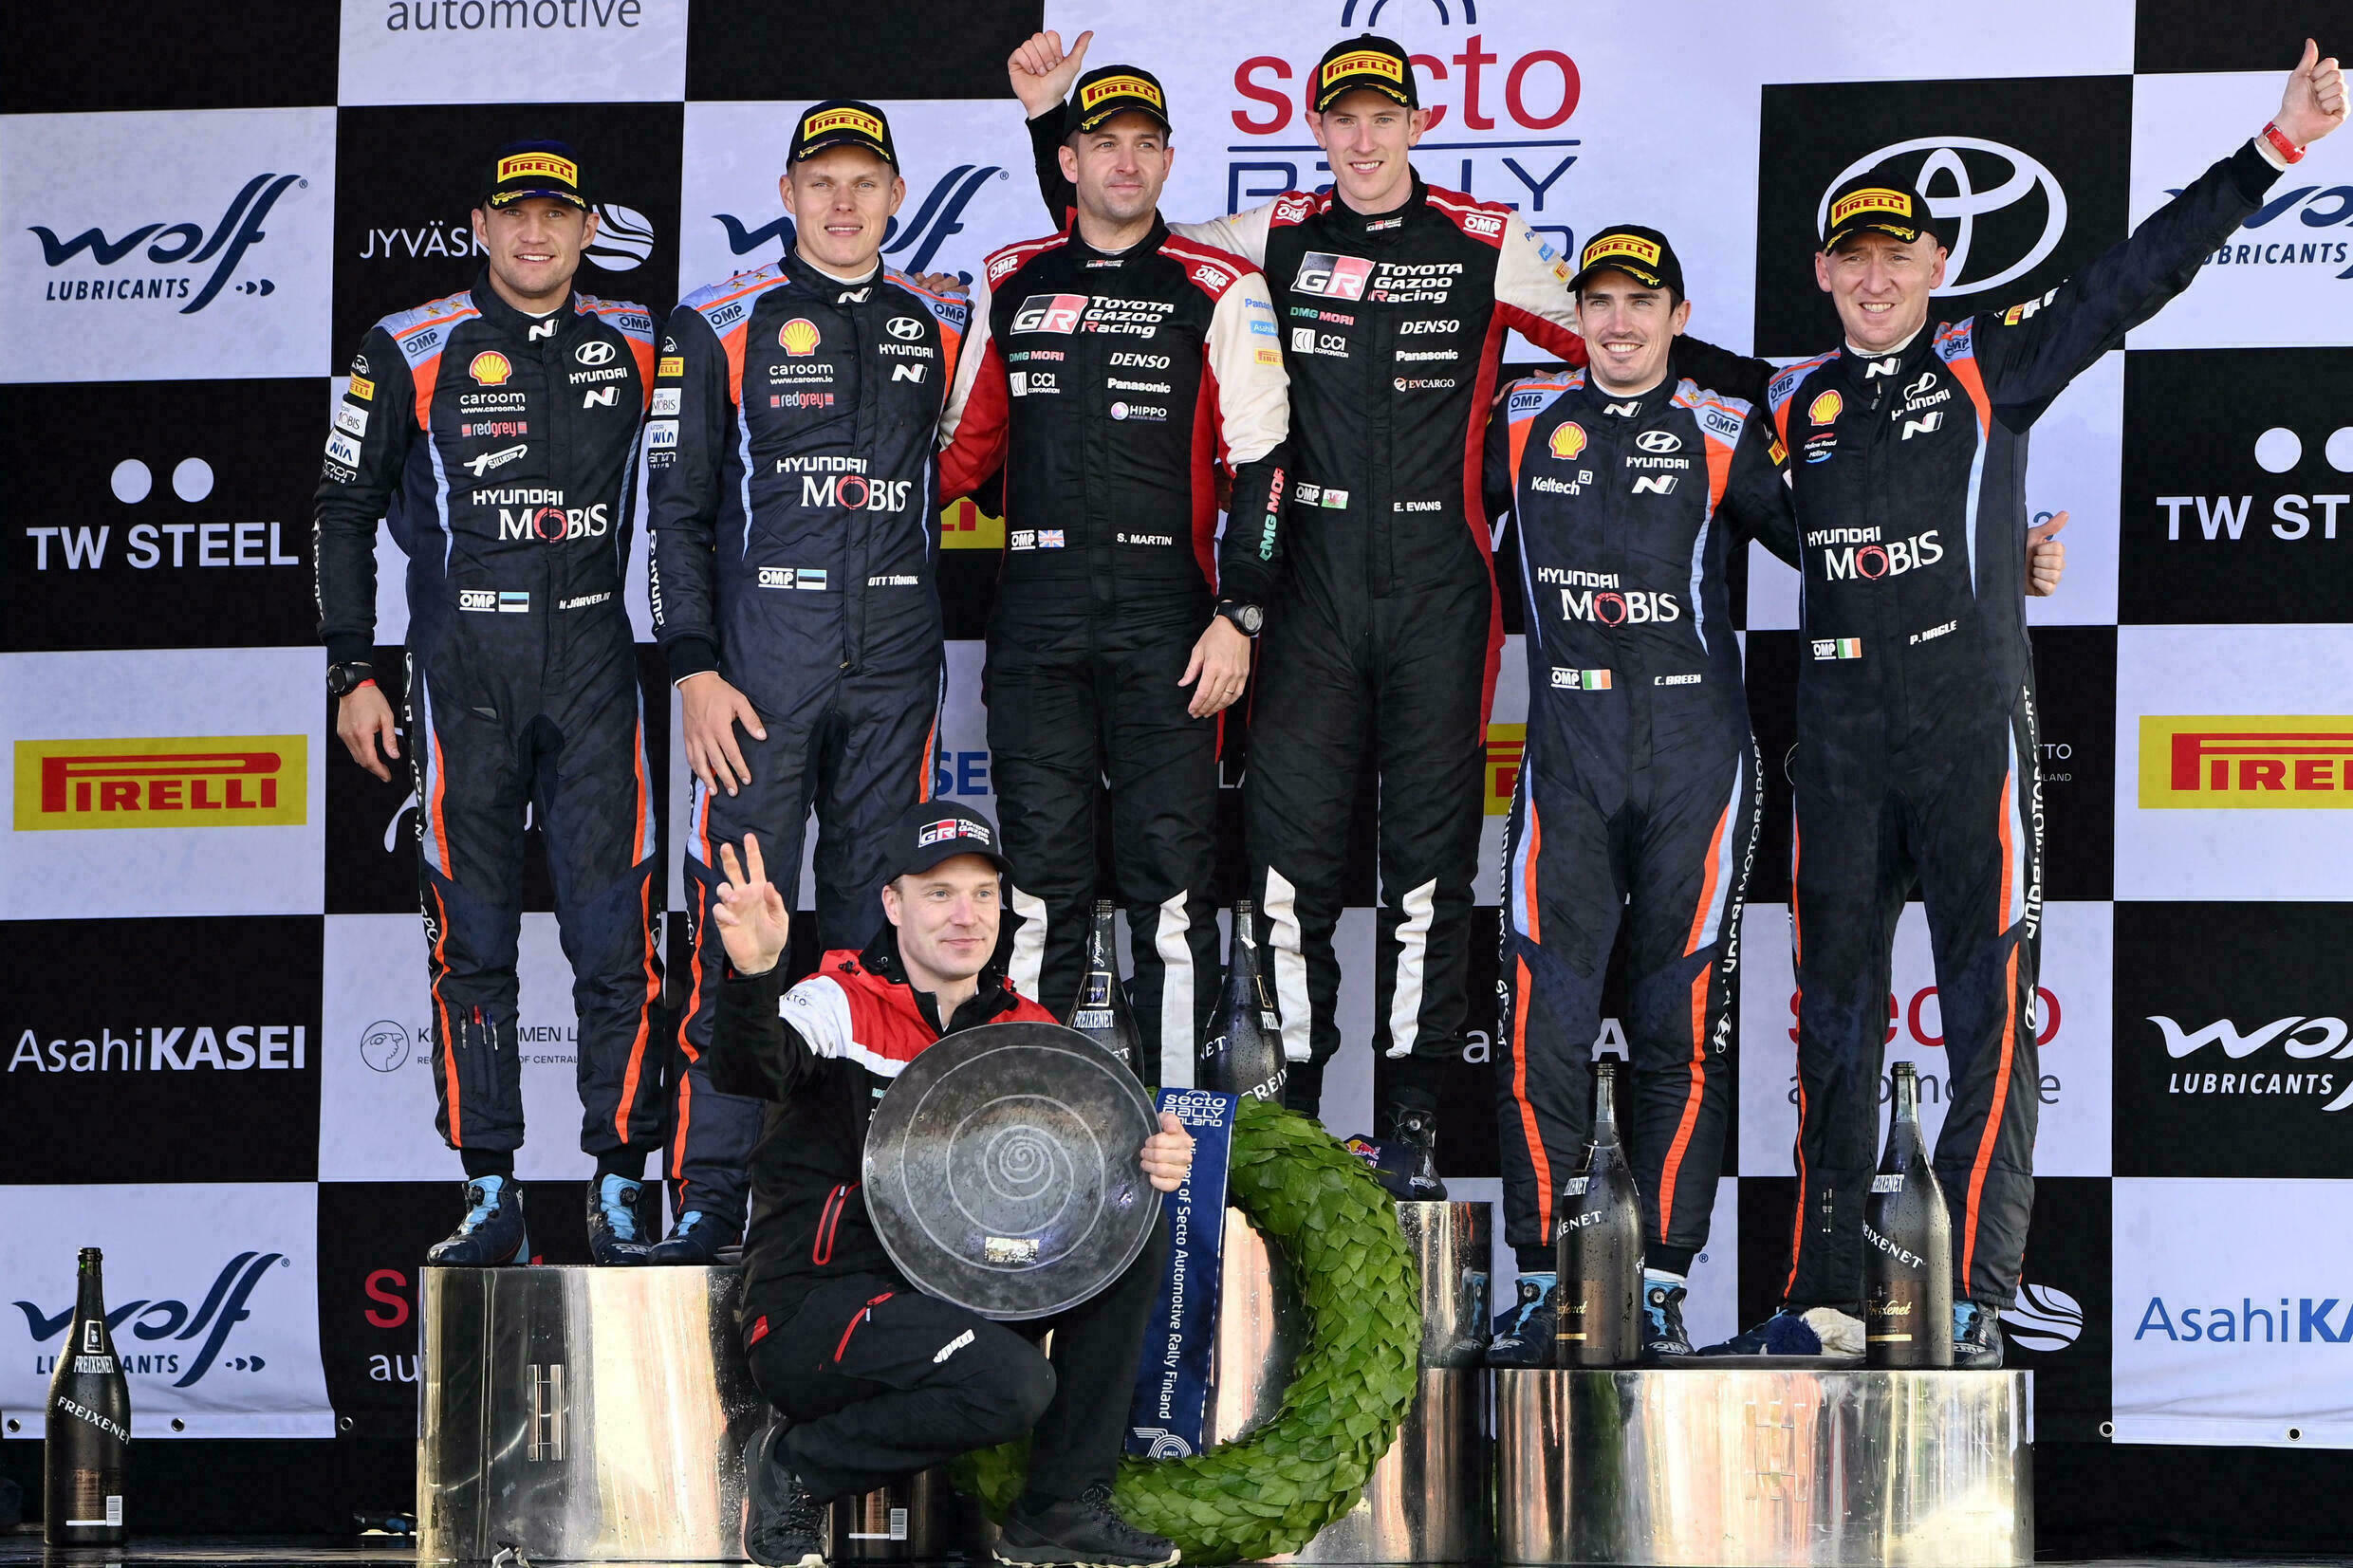 The podium at the Rally Finland, on October 3, 2021 in Lucknow